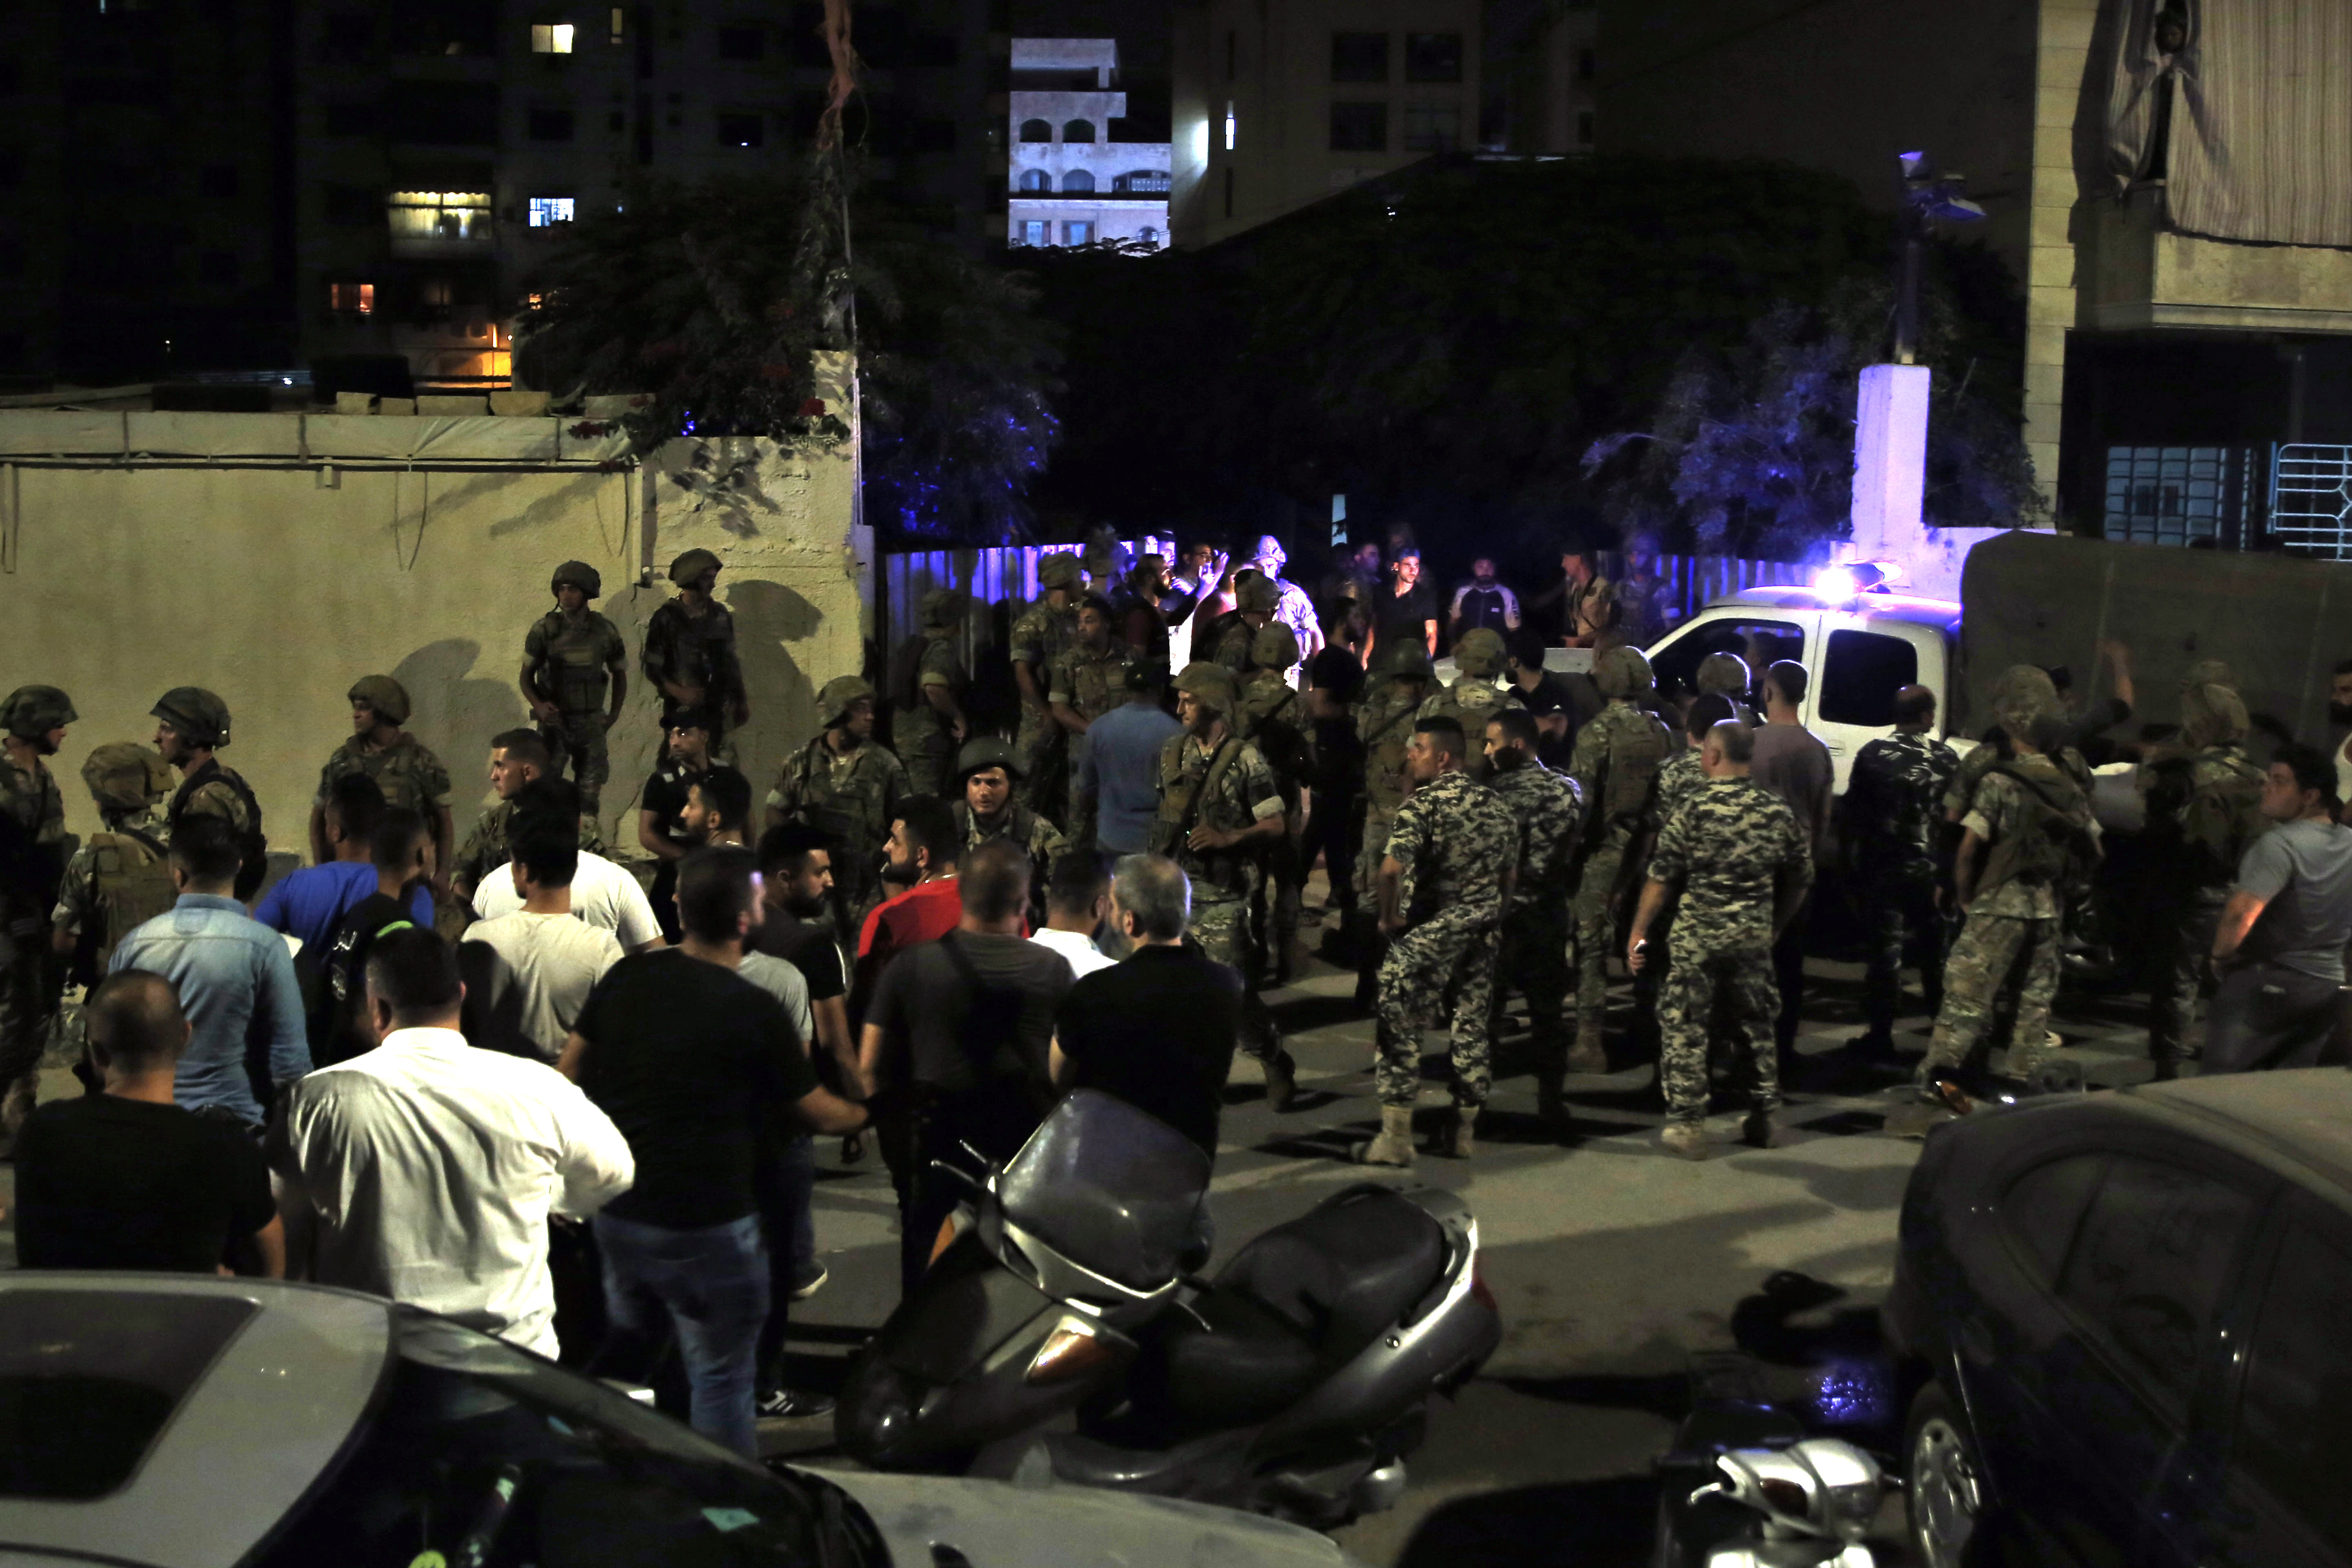 Lebanese security stand at the site where an Israeli drone was said to have crashed in a stronghold of the Lebanese Hezbollah group, in a southern suburb of Beirut, Lebanon, Sunday, Aug. 25, 2019. A Hezbollah official said Sunday that an Israeli drone went down over the Lebanese capital of Beirut and another exploded in the air, amid regional tensions between Israel and Iran. (AP Photo/Bilal Hussein)